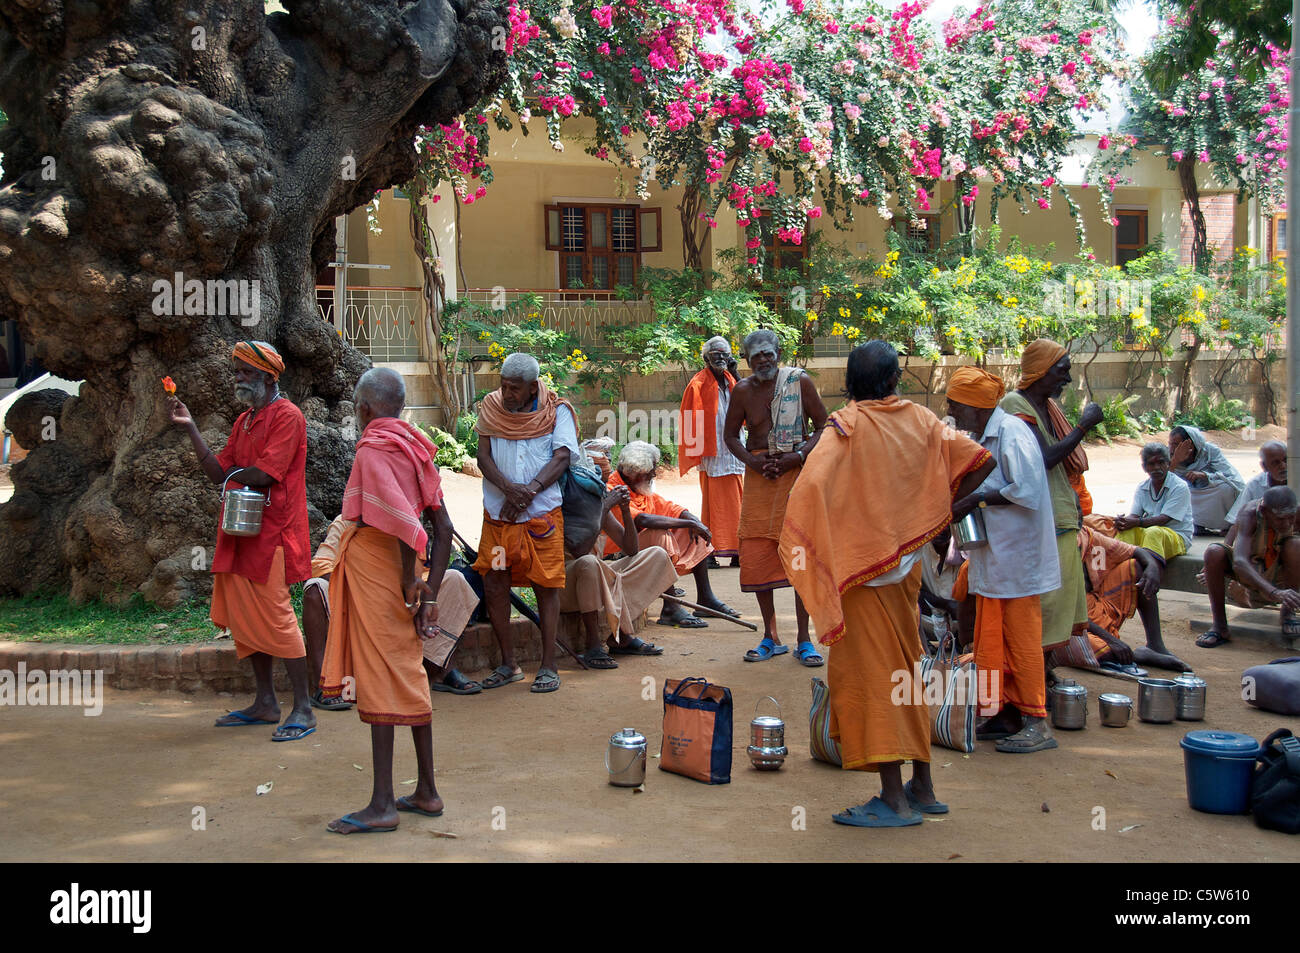 Sadhus waiting for food Sri Ramana Ashram Tiruvannamalai Tamil Nadu South India - Stock Image